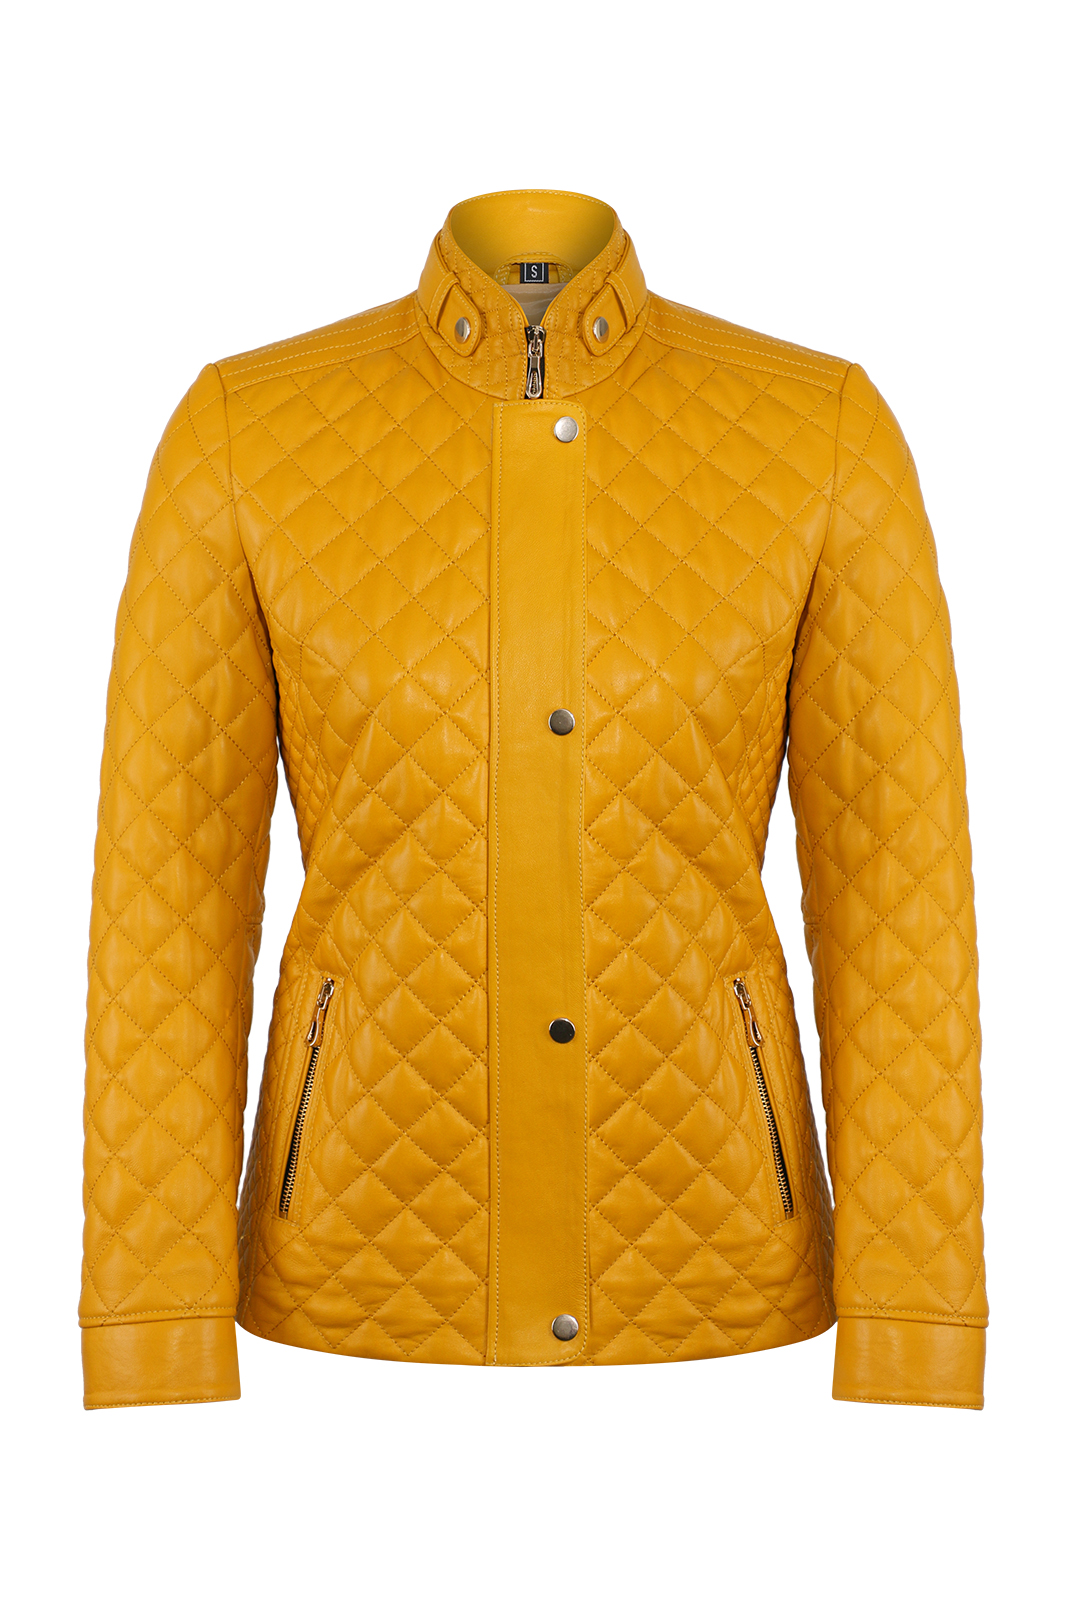 IPAWDUNNA Yellow Leather Jacket